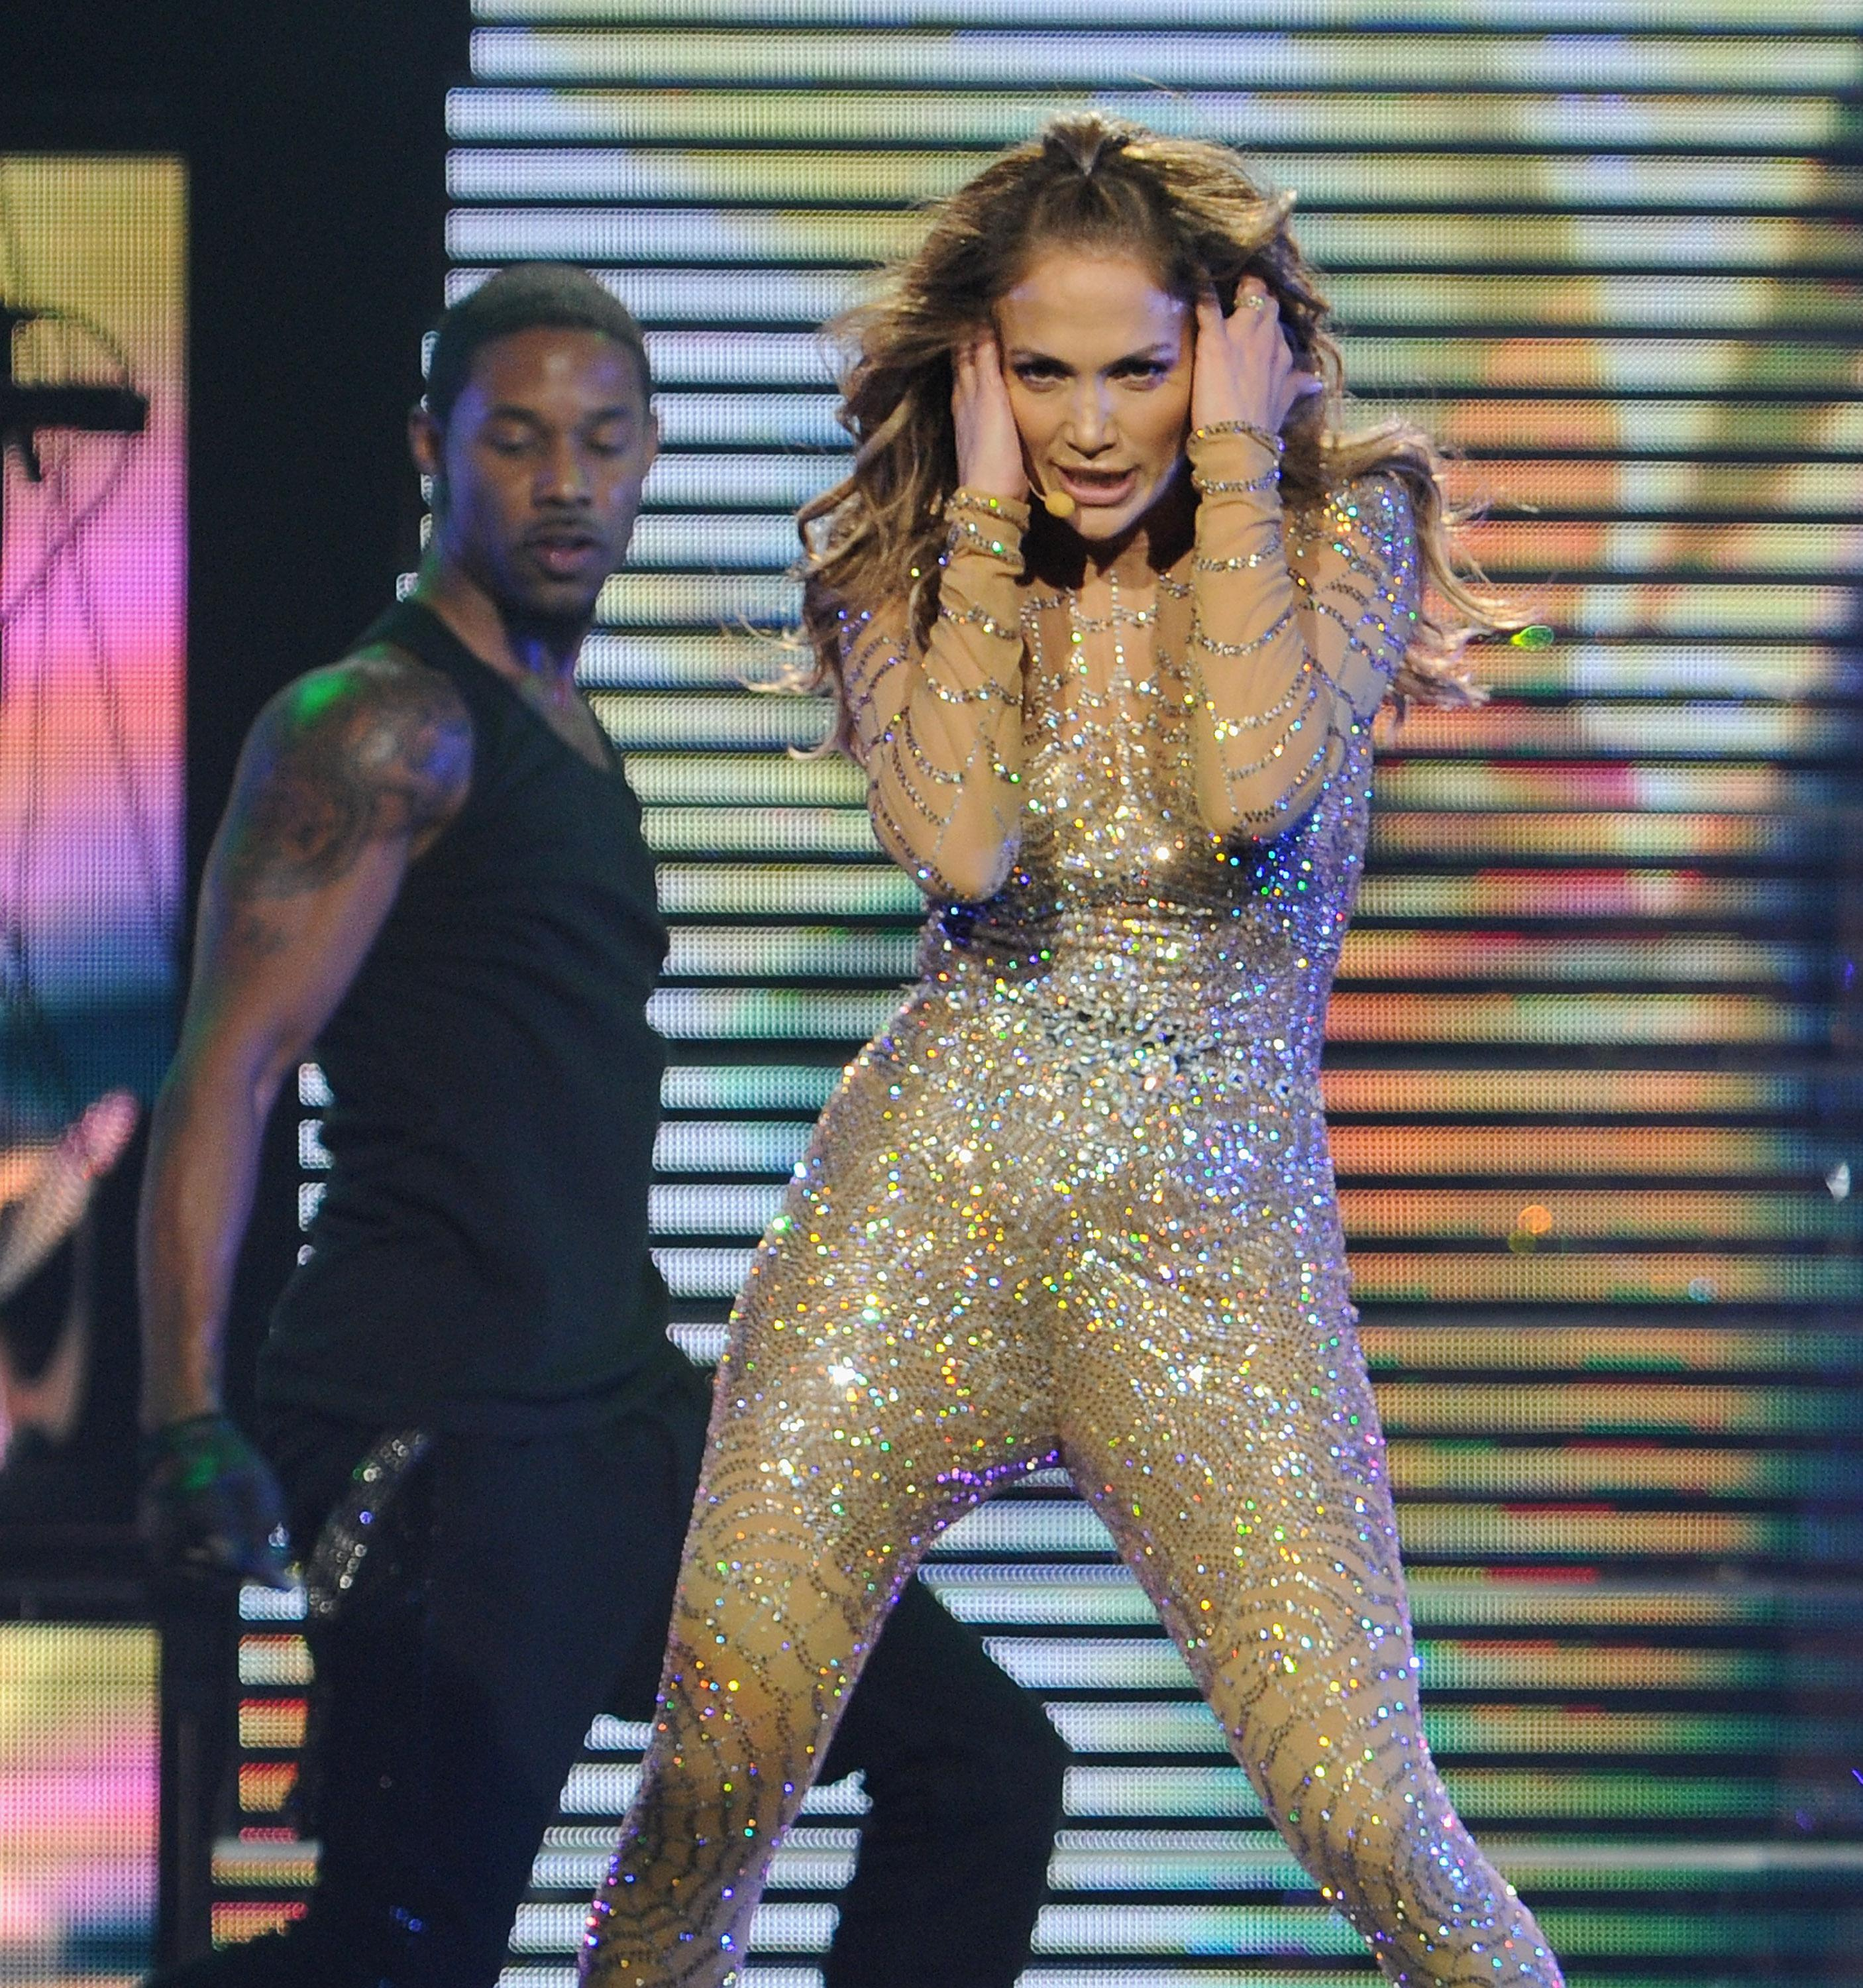 Jennifer Lopez Special Concert at Mohegan Sun's 15th Anniversary Celebration